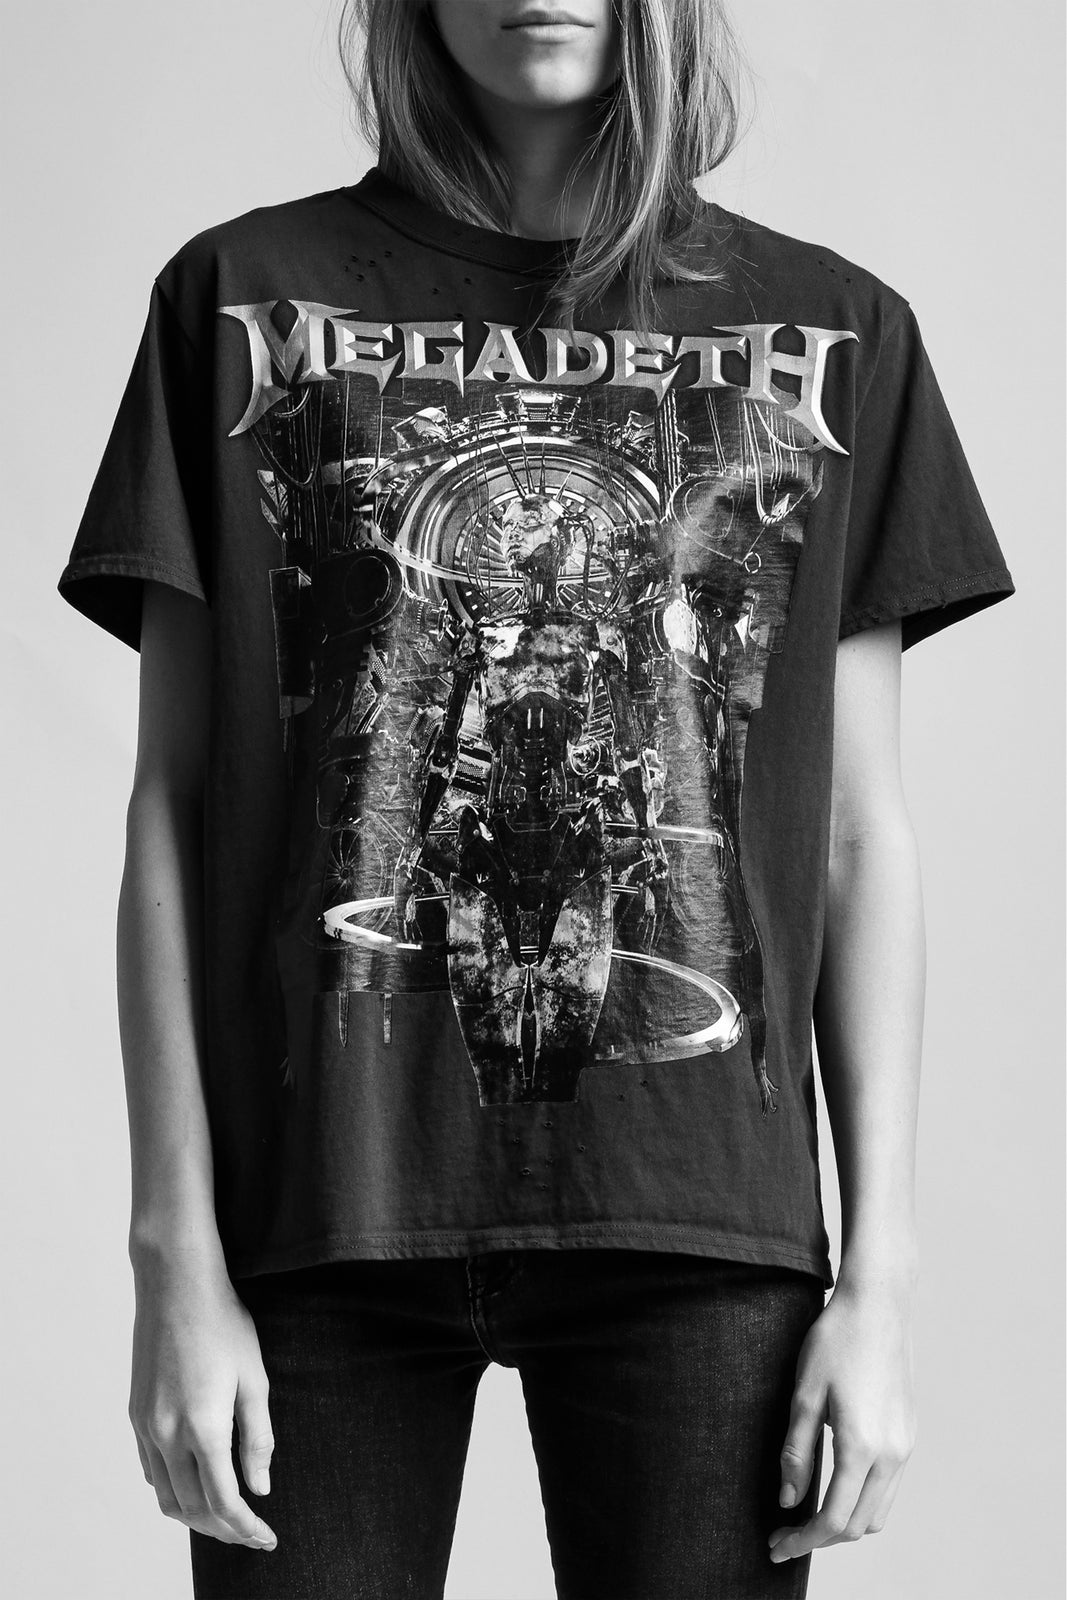 R13 classic band tee with crewneck and megadeth graphic in black